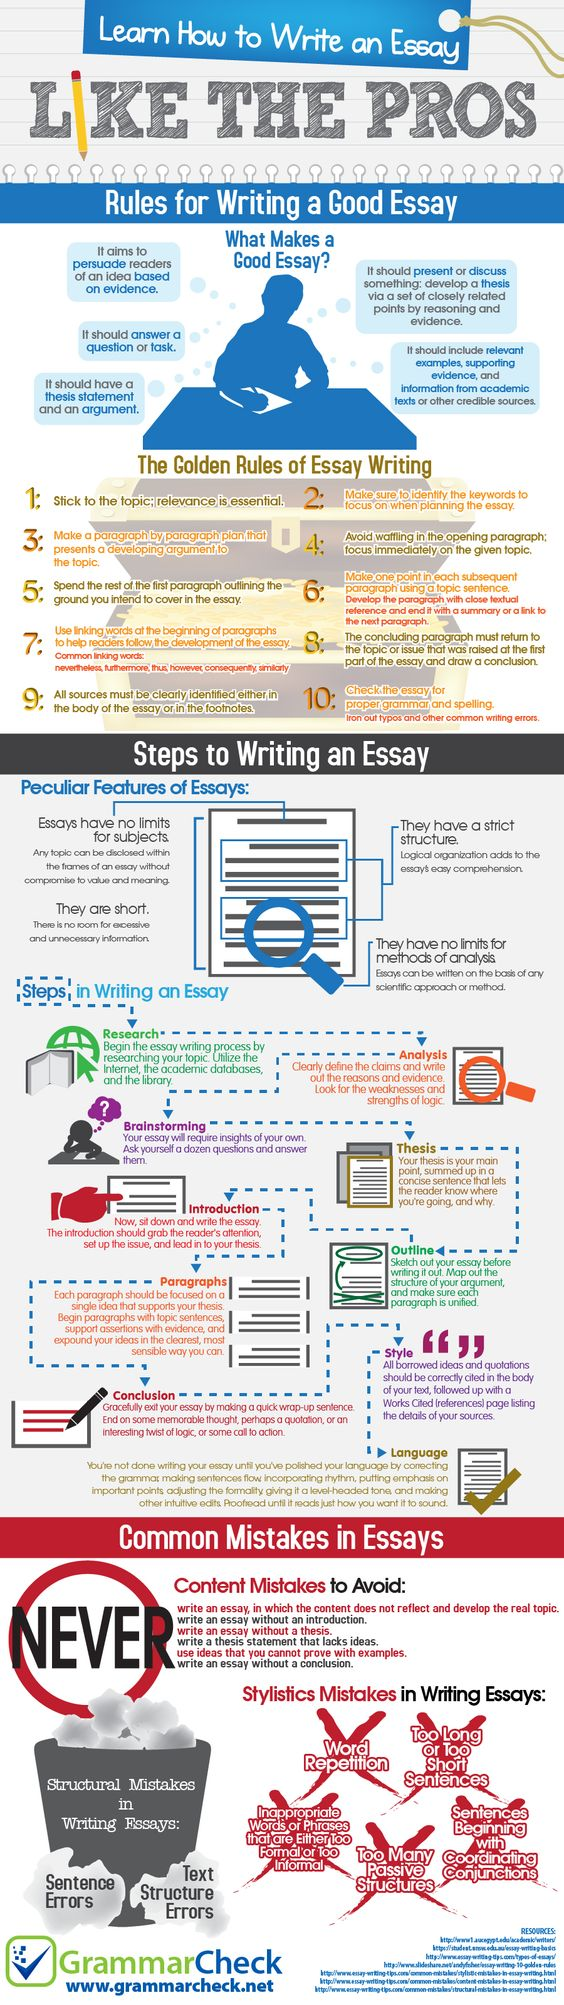 Anyone ever bought an essay?